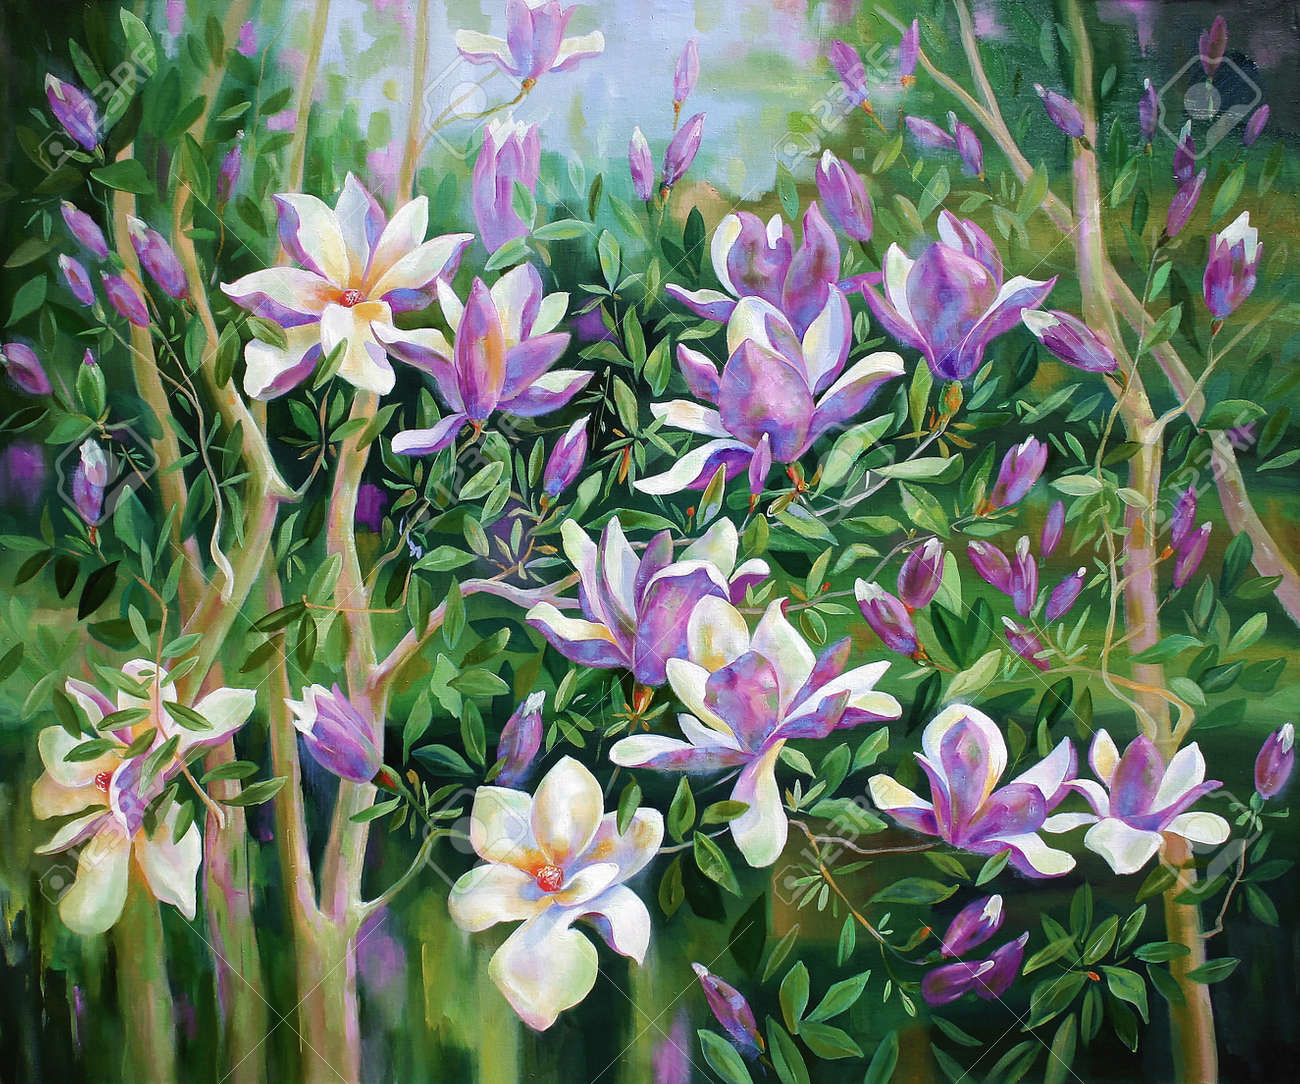 Oil painting on canvas. Blooming magnolia Sulange on the branches of a tree. - 103318509